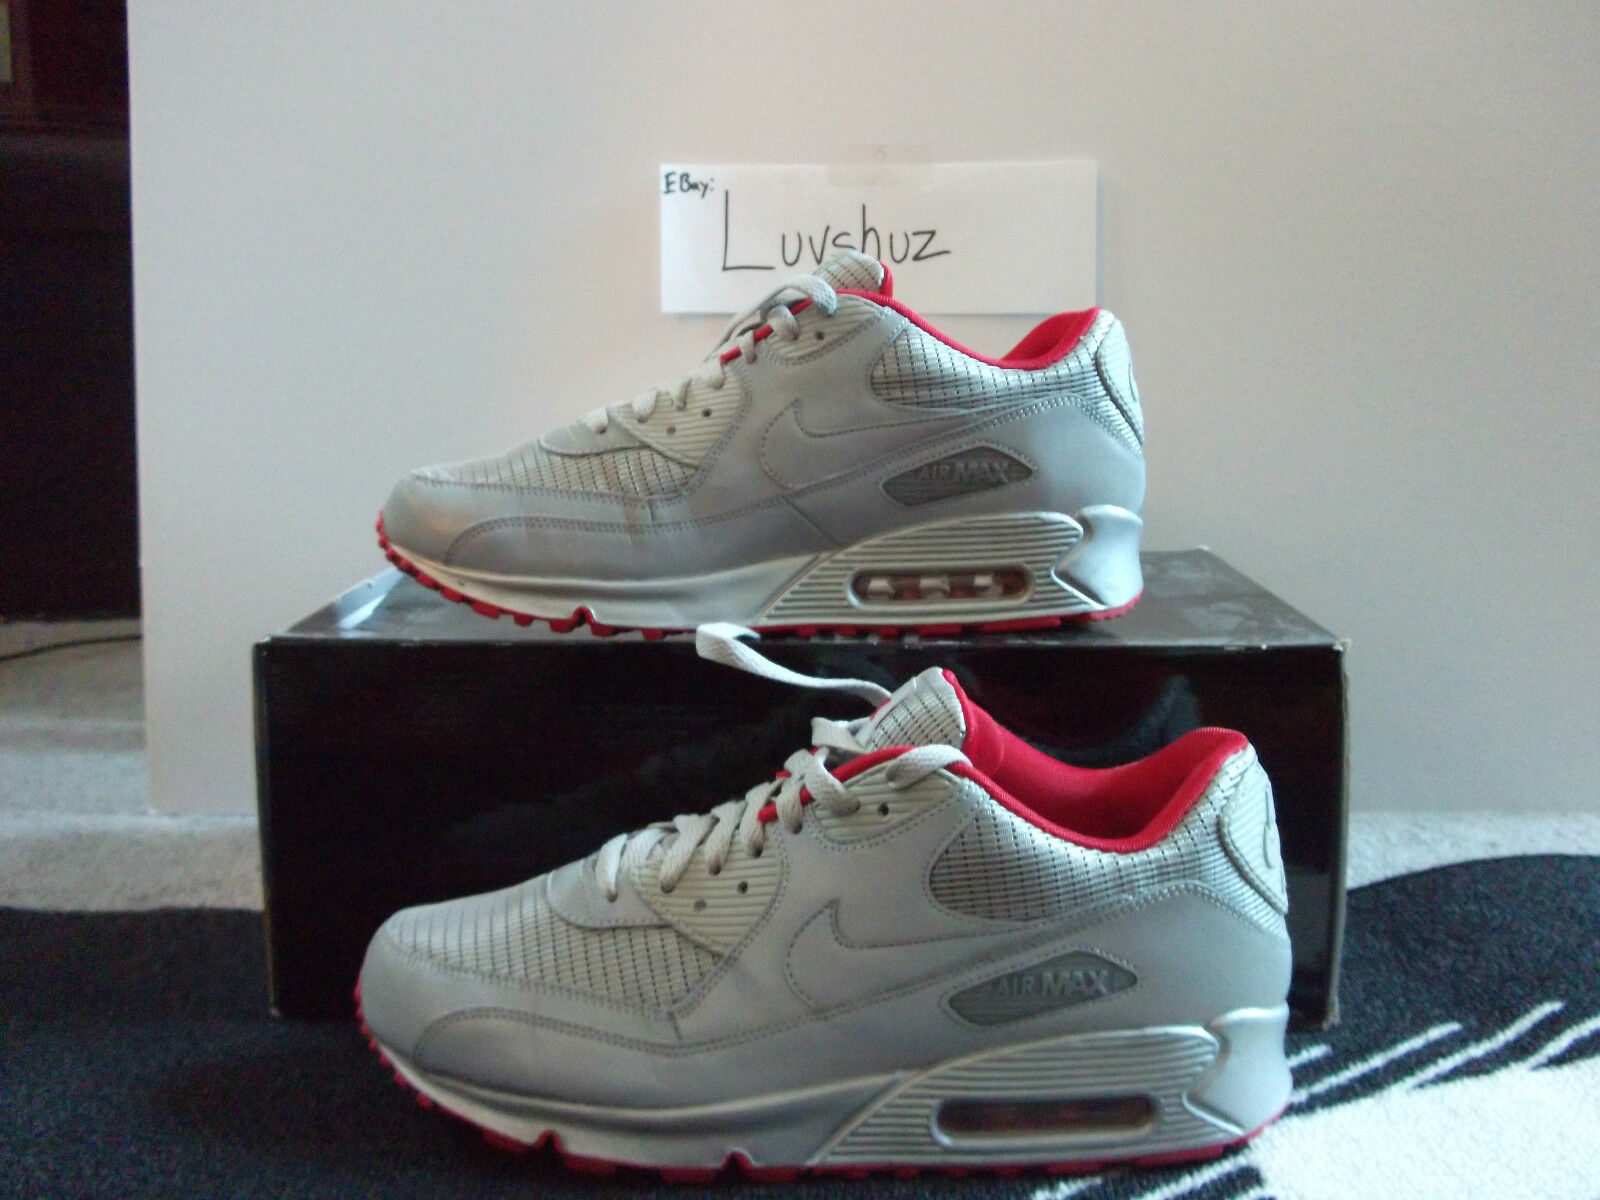 Nike Air Max 90 Metallic Metallic Metallic Silver And Red (3M) sz11 VNDS  Moon landing 943fed